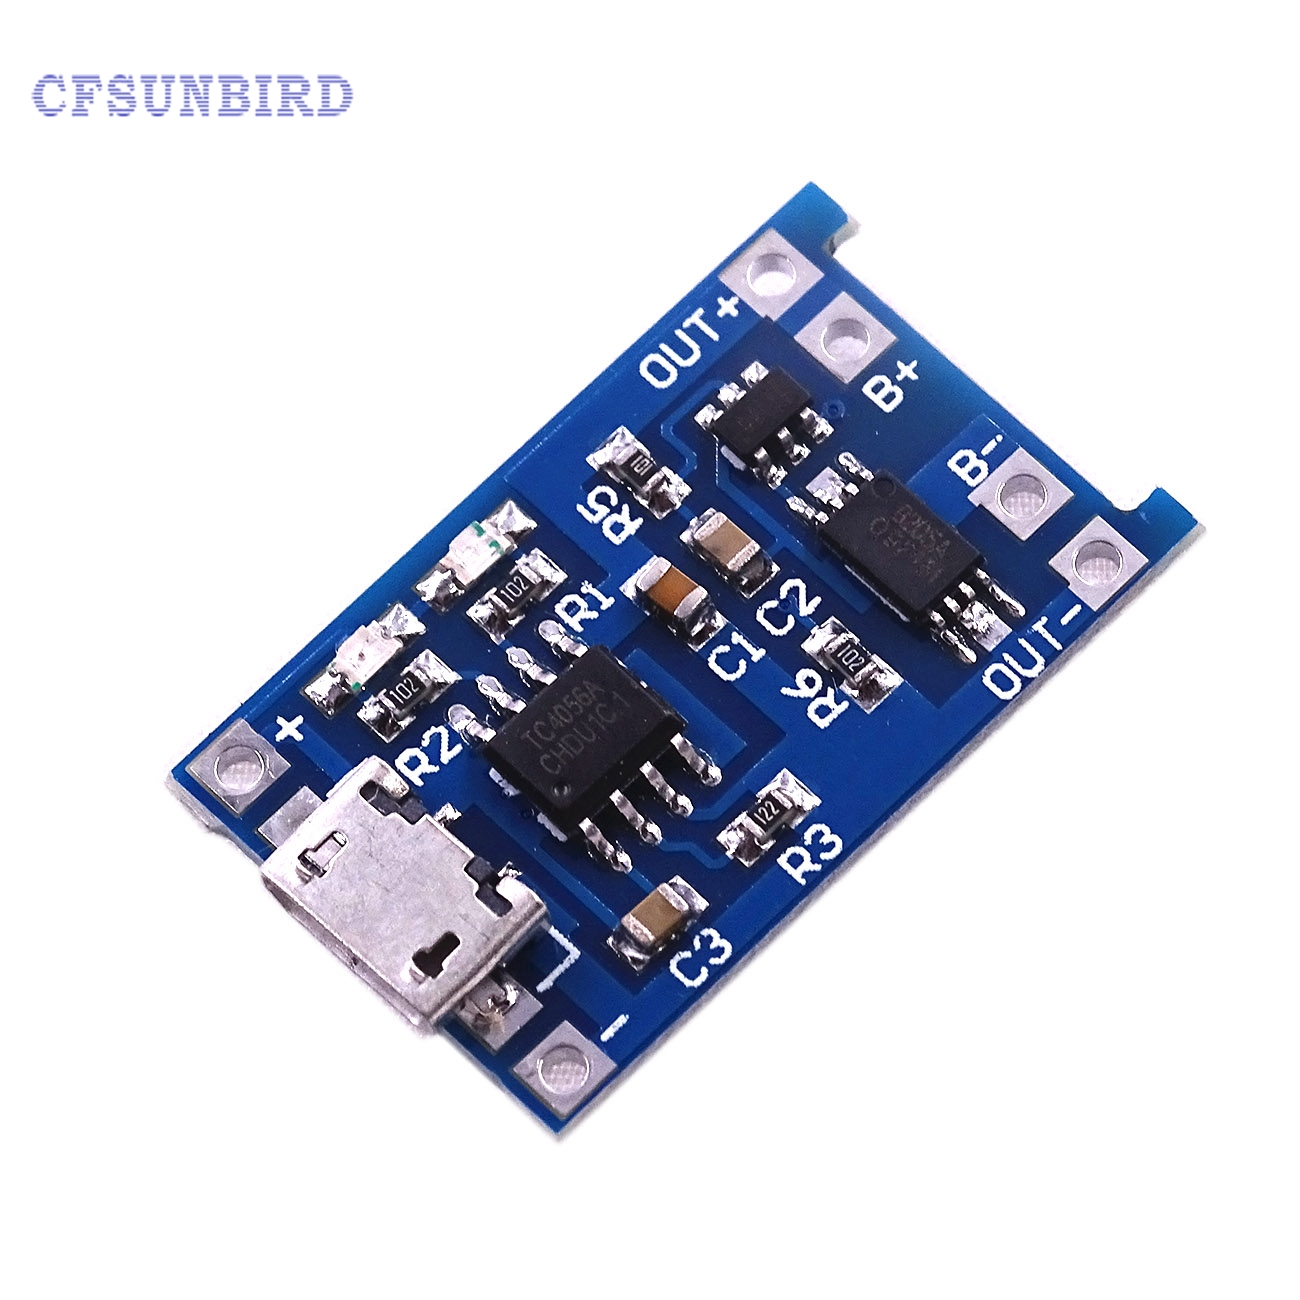 100pcs  Micro USB 5V 1A 18650 TP4056 Lithium Battery Charger Module Charging Board With Protection Dual Functions 10pcs lot 2s li ion lithium battery 18650 charger protection module board 3a 7 4v 8 4v free shipping